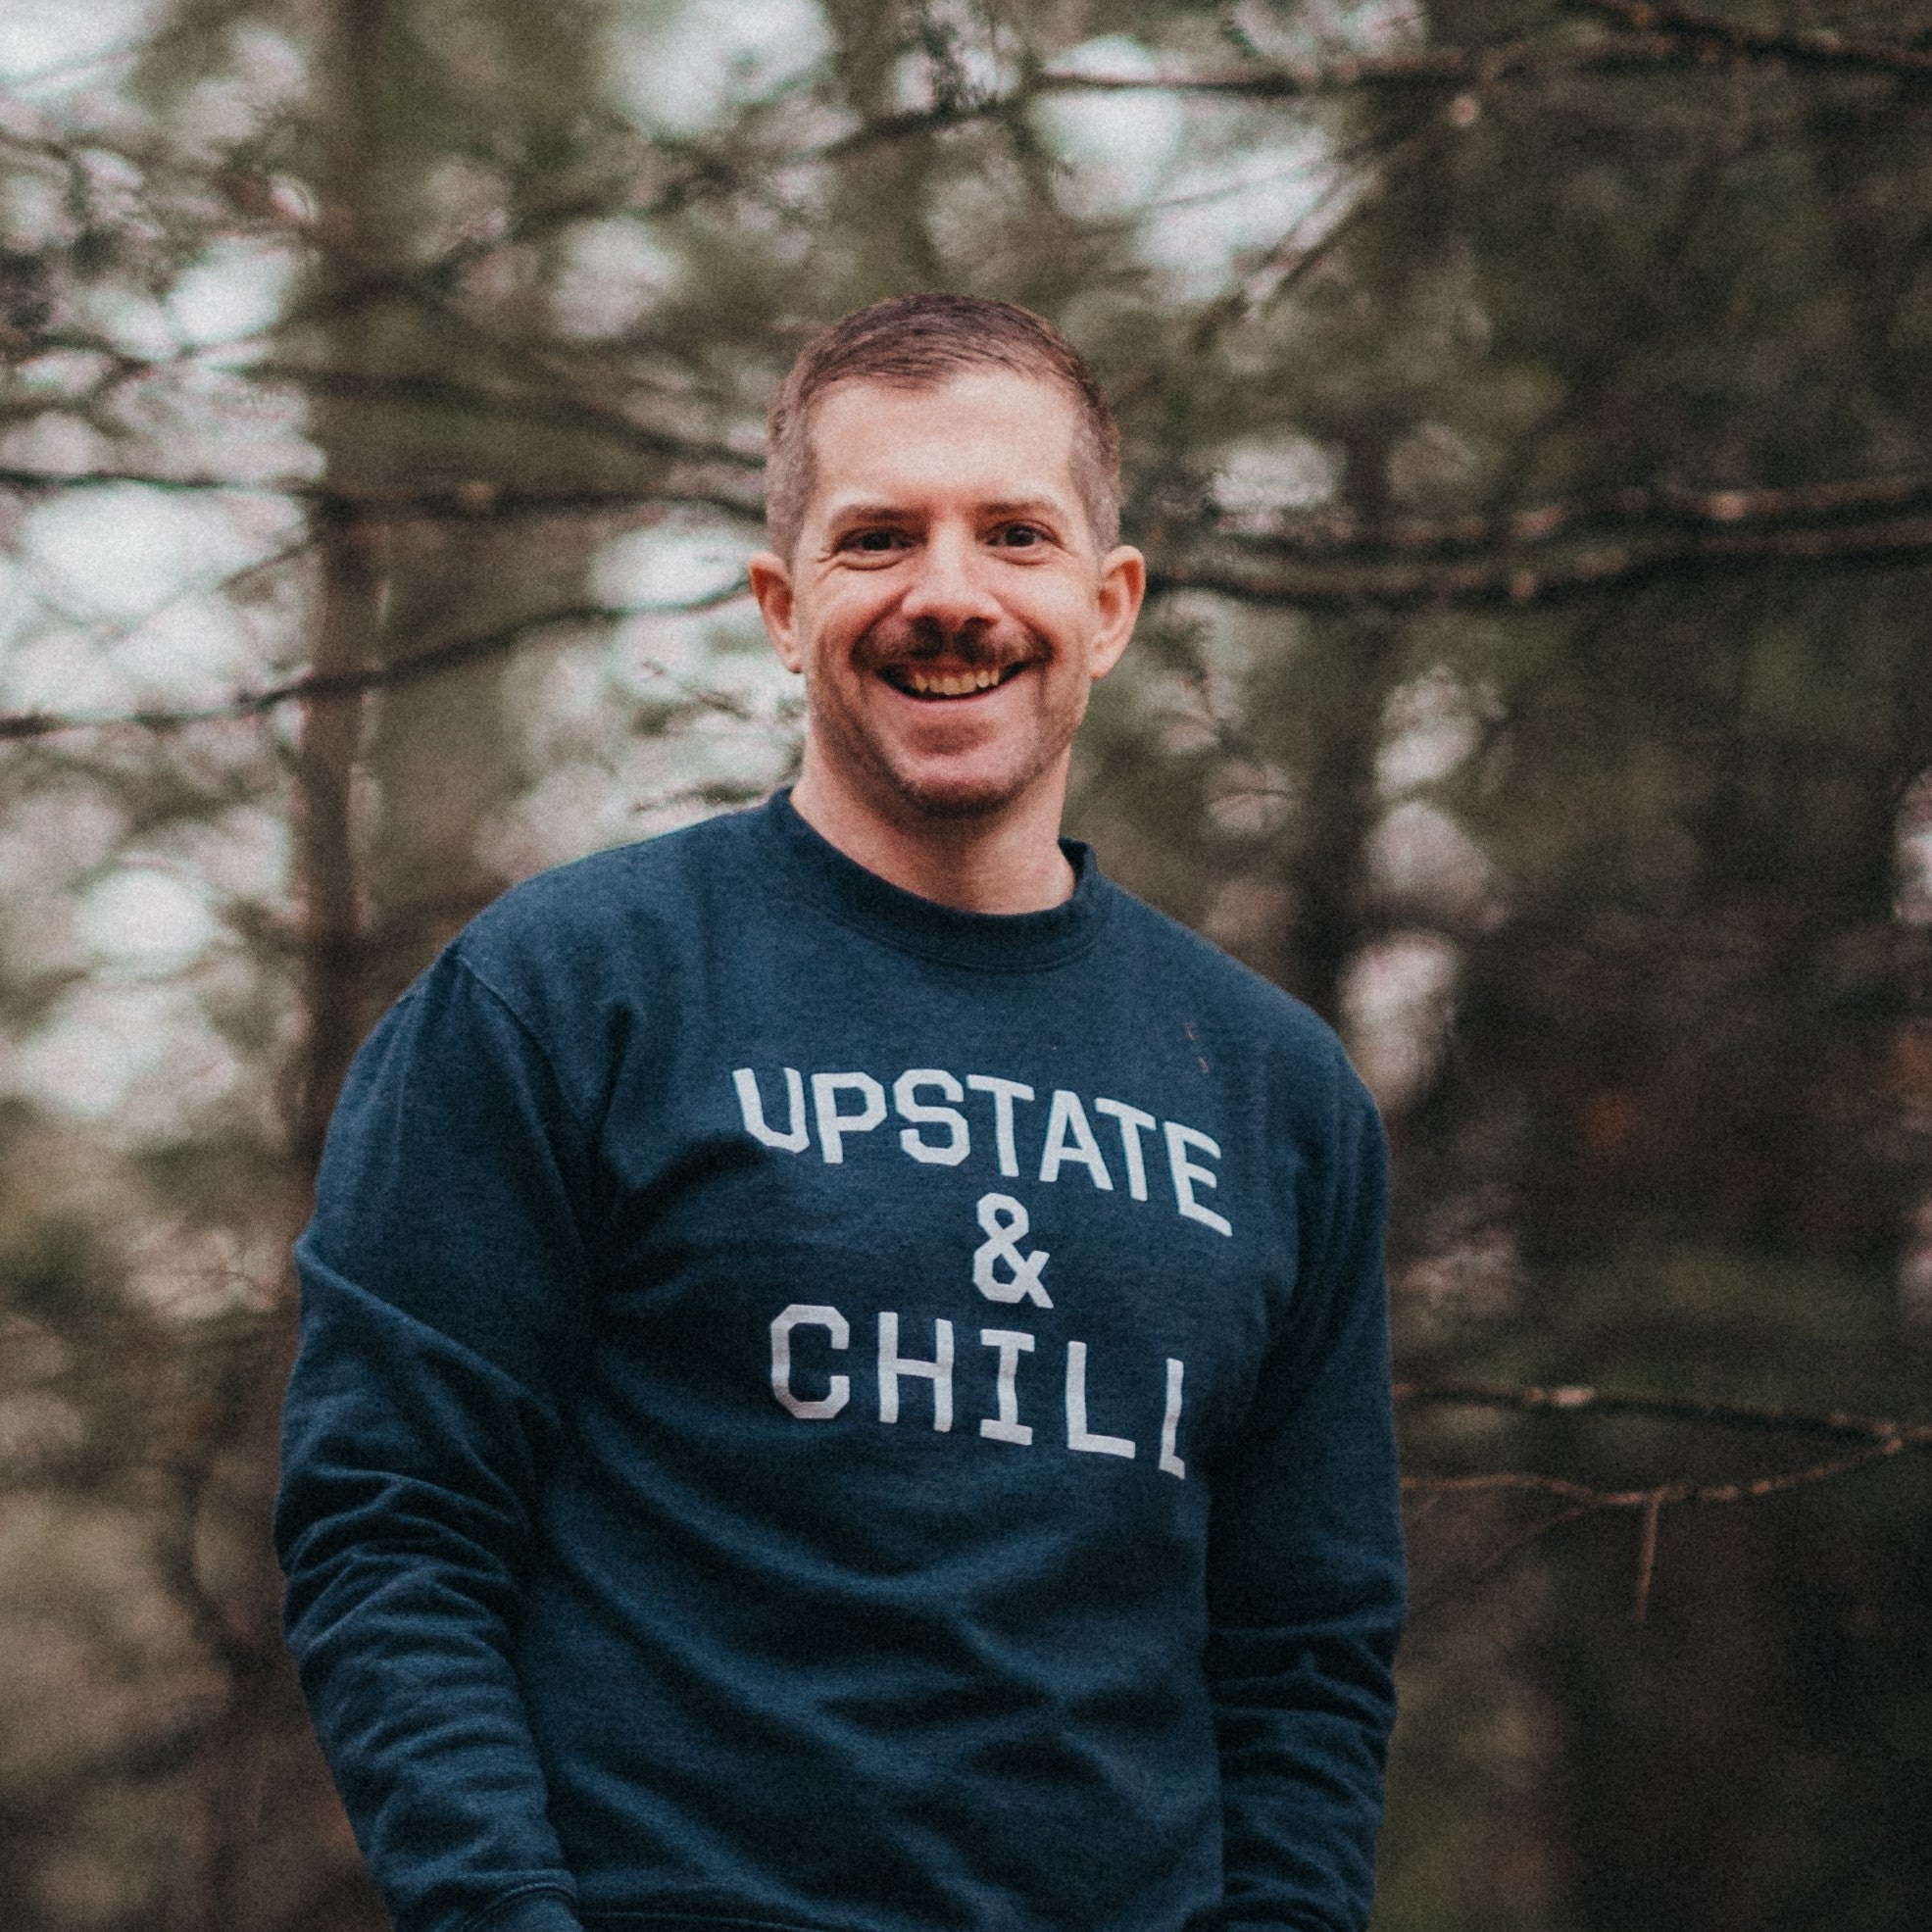 Upstate & Chill - Crewneck - Heather Navy